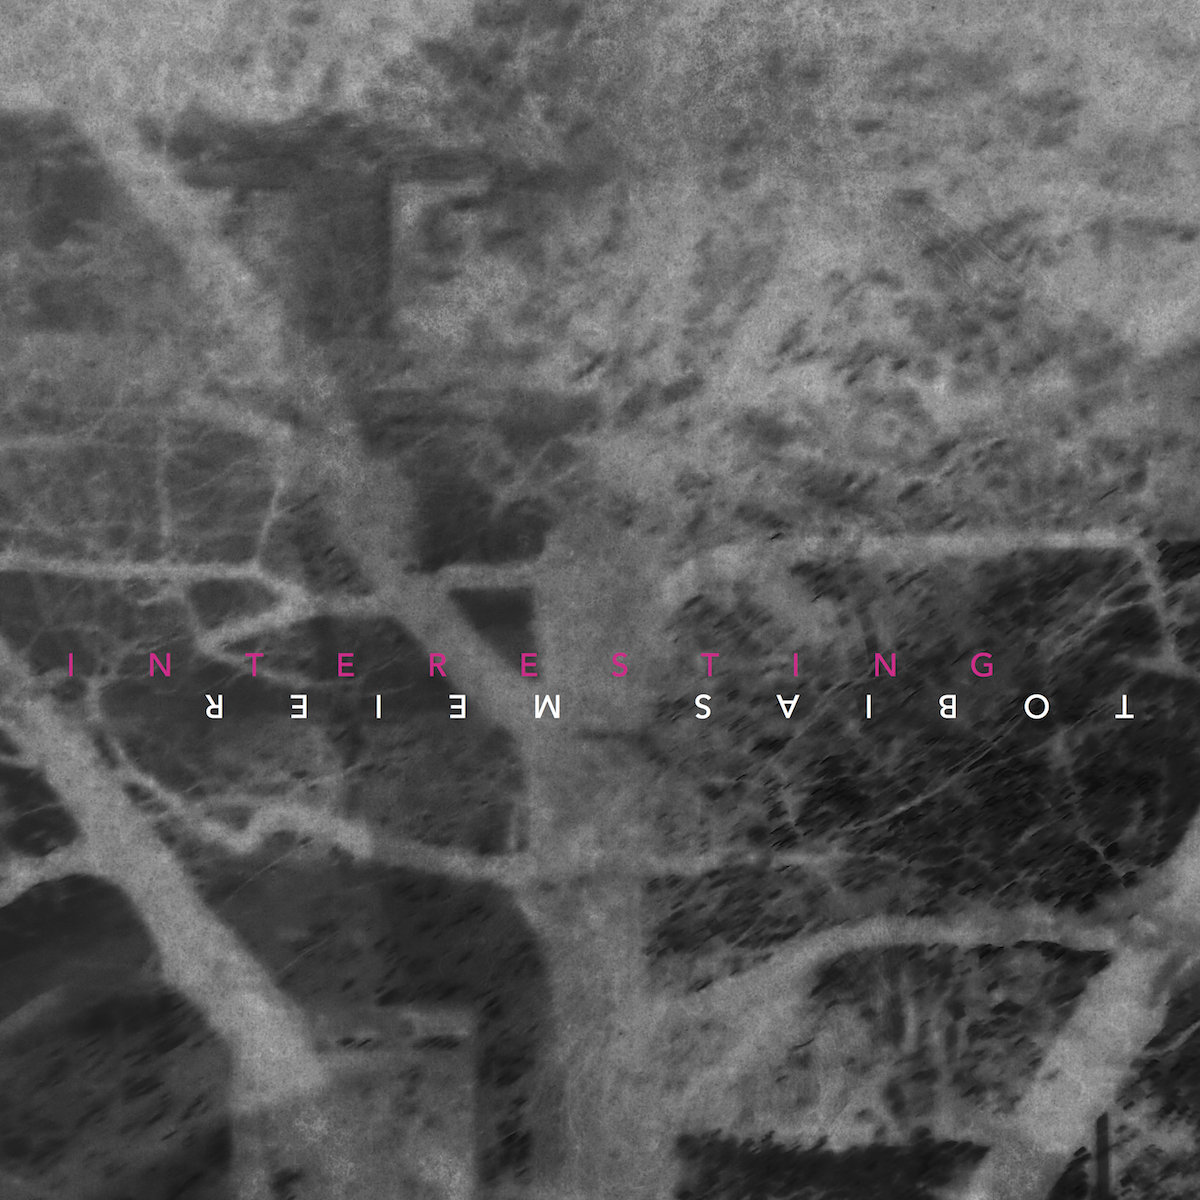 Tobias Meier: Interesting